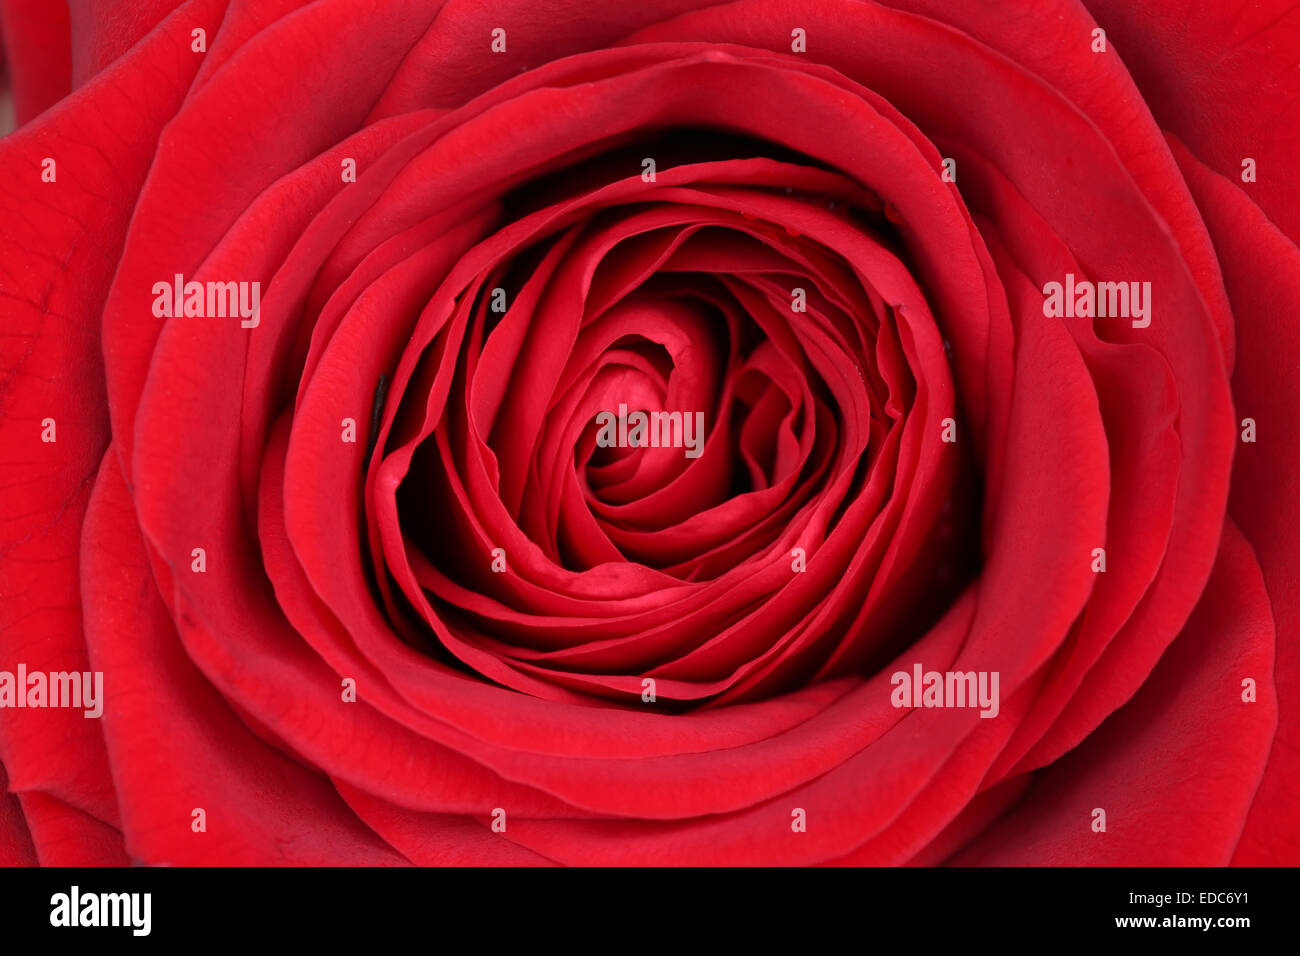 Closeup blossom red rose on mothers day or Valentine's day - Stock Image